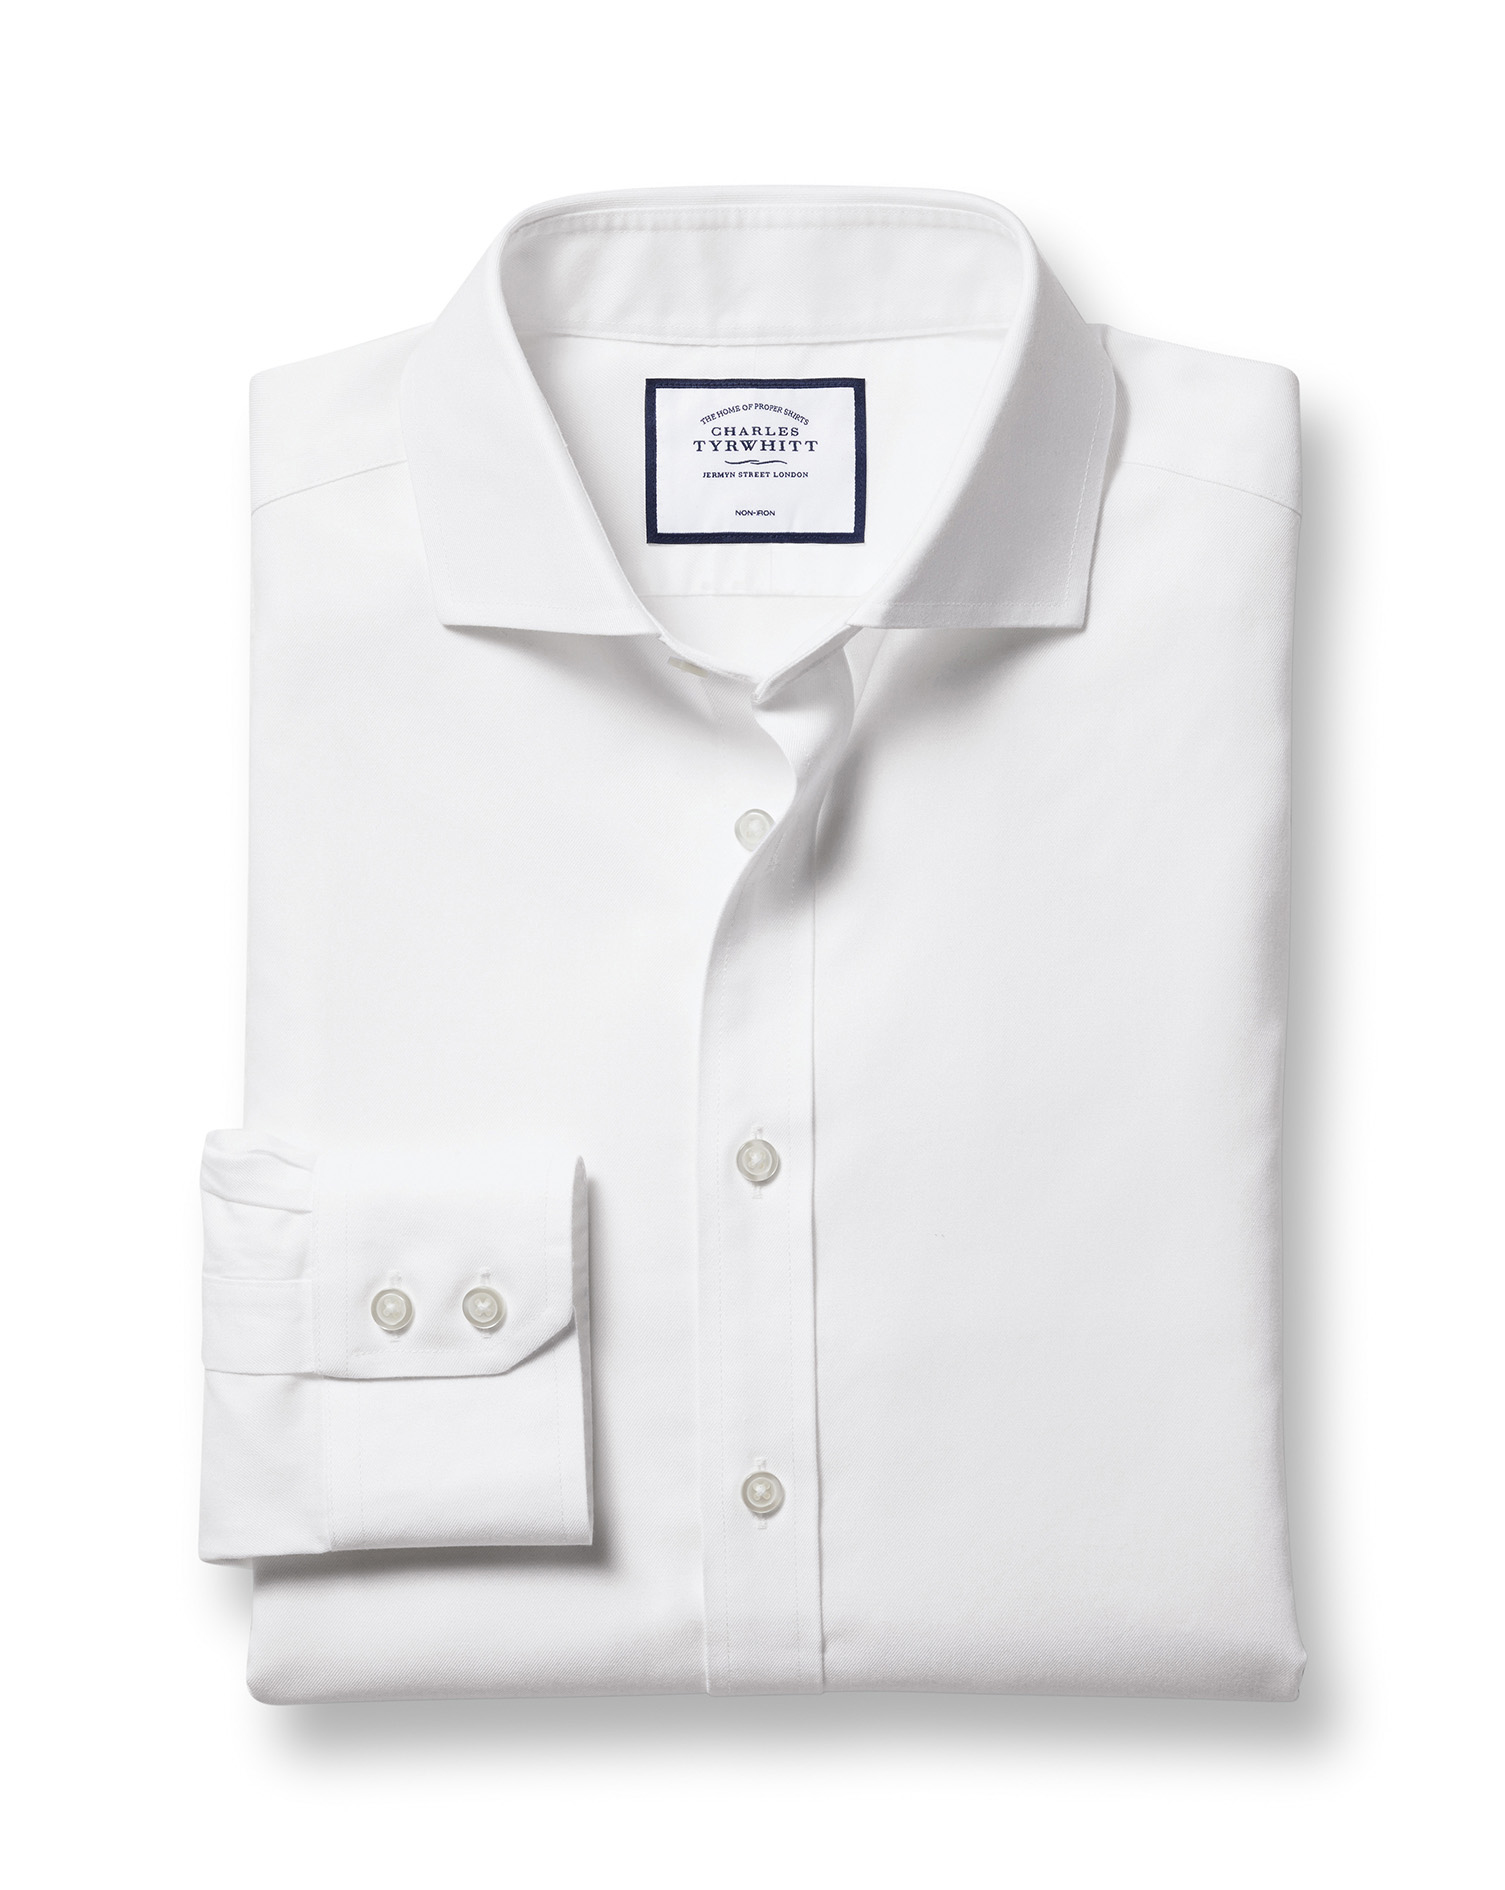 Classic Fit Cutaway Non-Iron Twill White Cotton Formal Shirt Single Cuff Size 17/38 by Charles Tyrwh